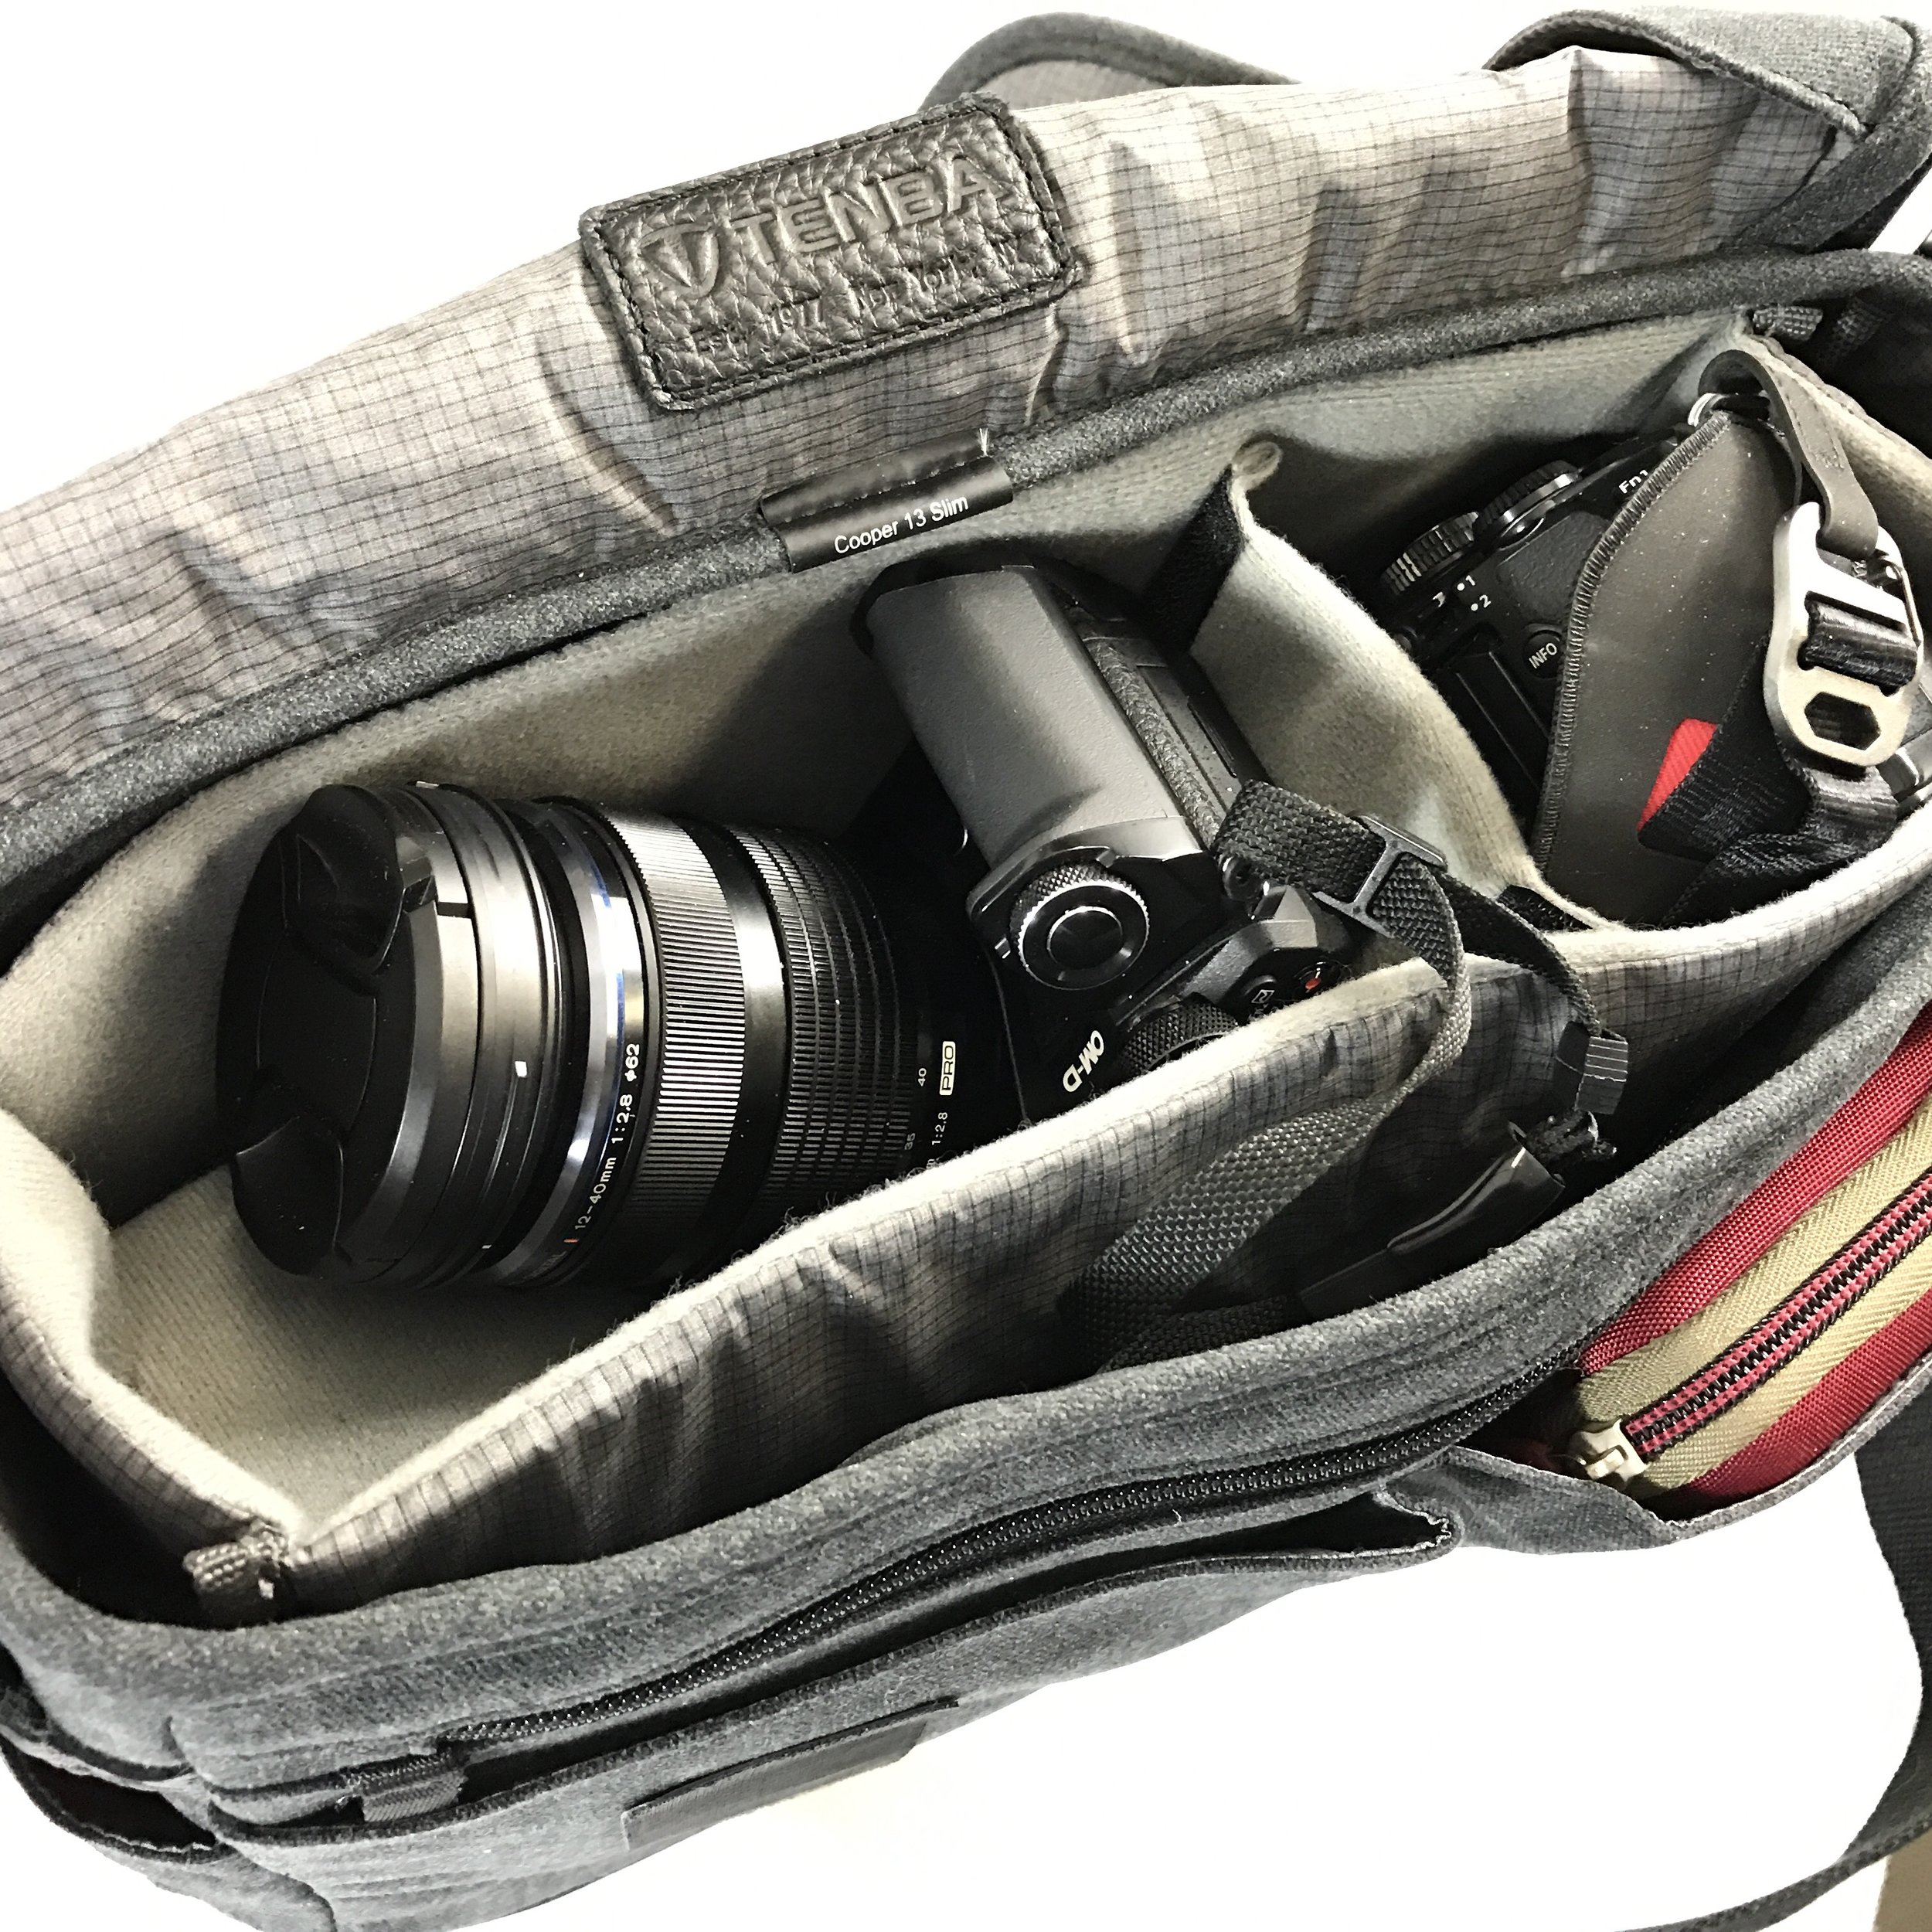 Showing how 12-40mm lens mounted on my E-M5 II rests nicely on soft divider that is on top of the TG Tracker and 12-32mm lens. Note red Case Logic bag in front expandable pocket.